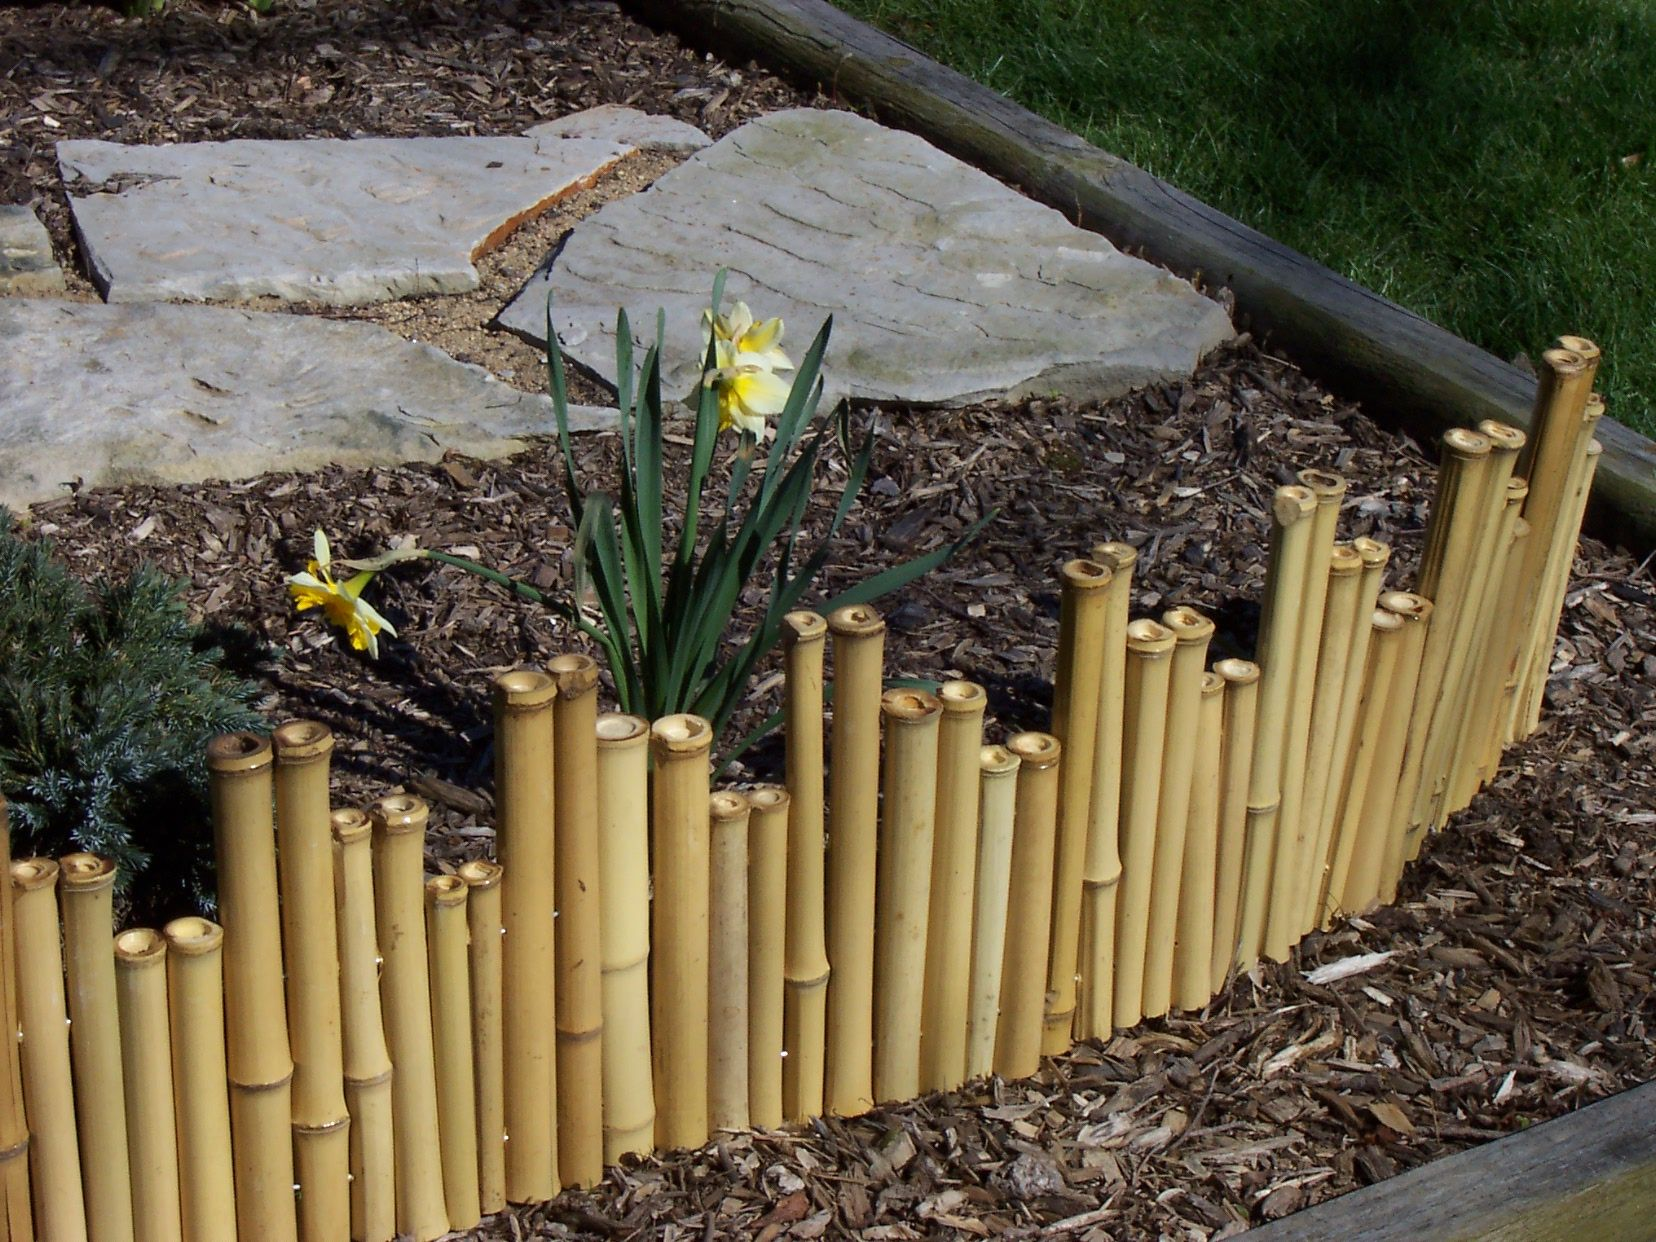 Bamboo Can Be Used For All Kind Of Things Like This Cool Garden